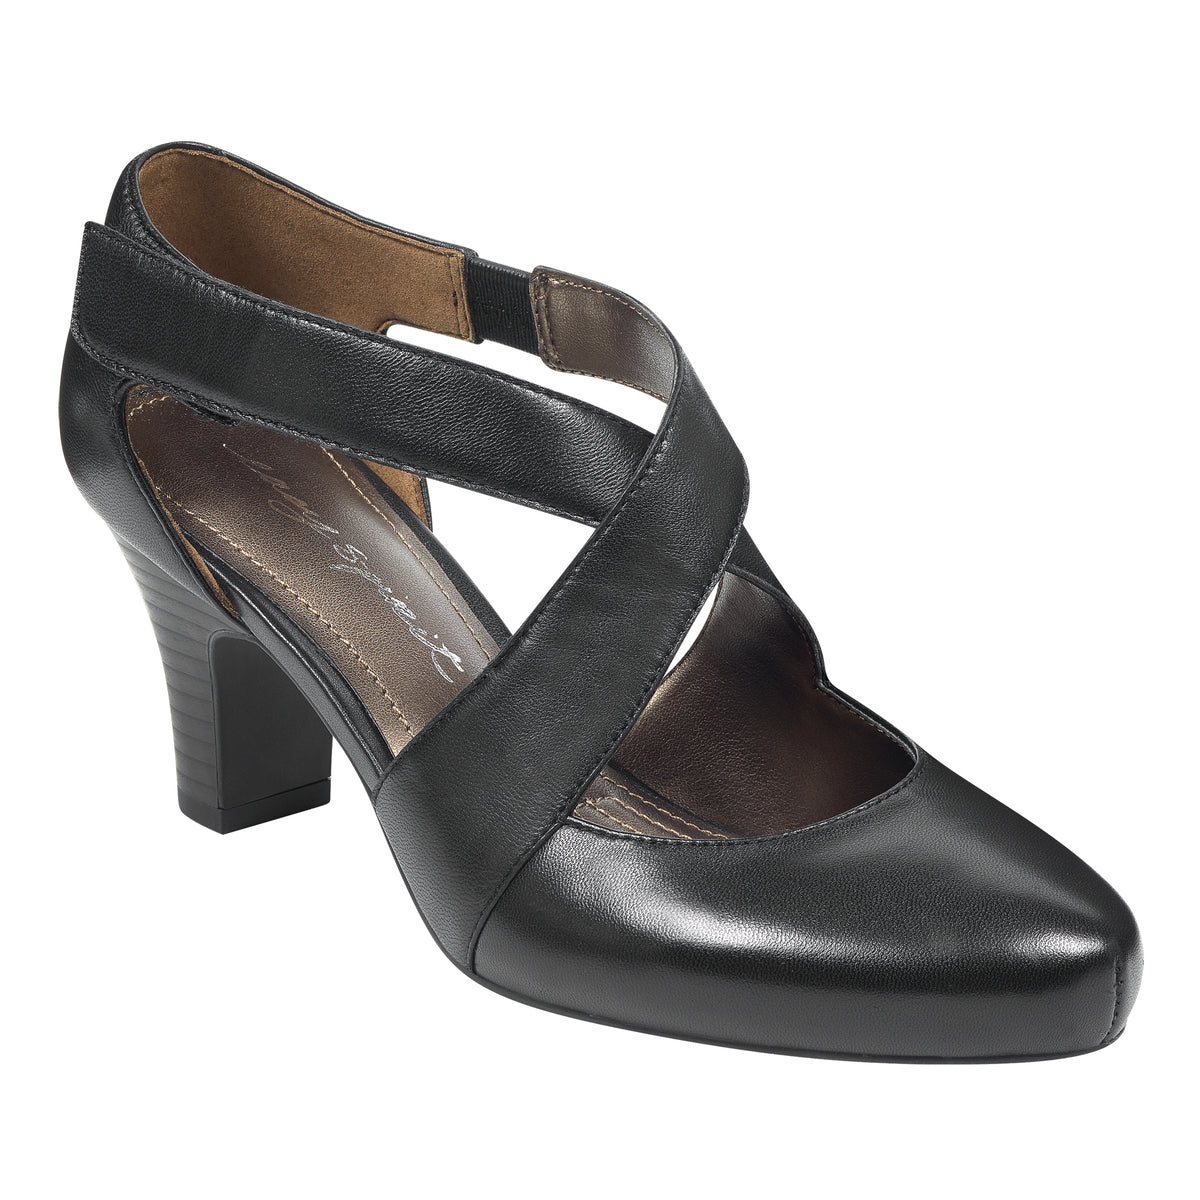 Rovana Leather Pumps